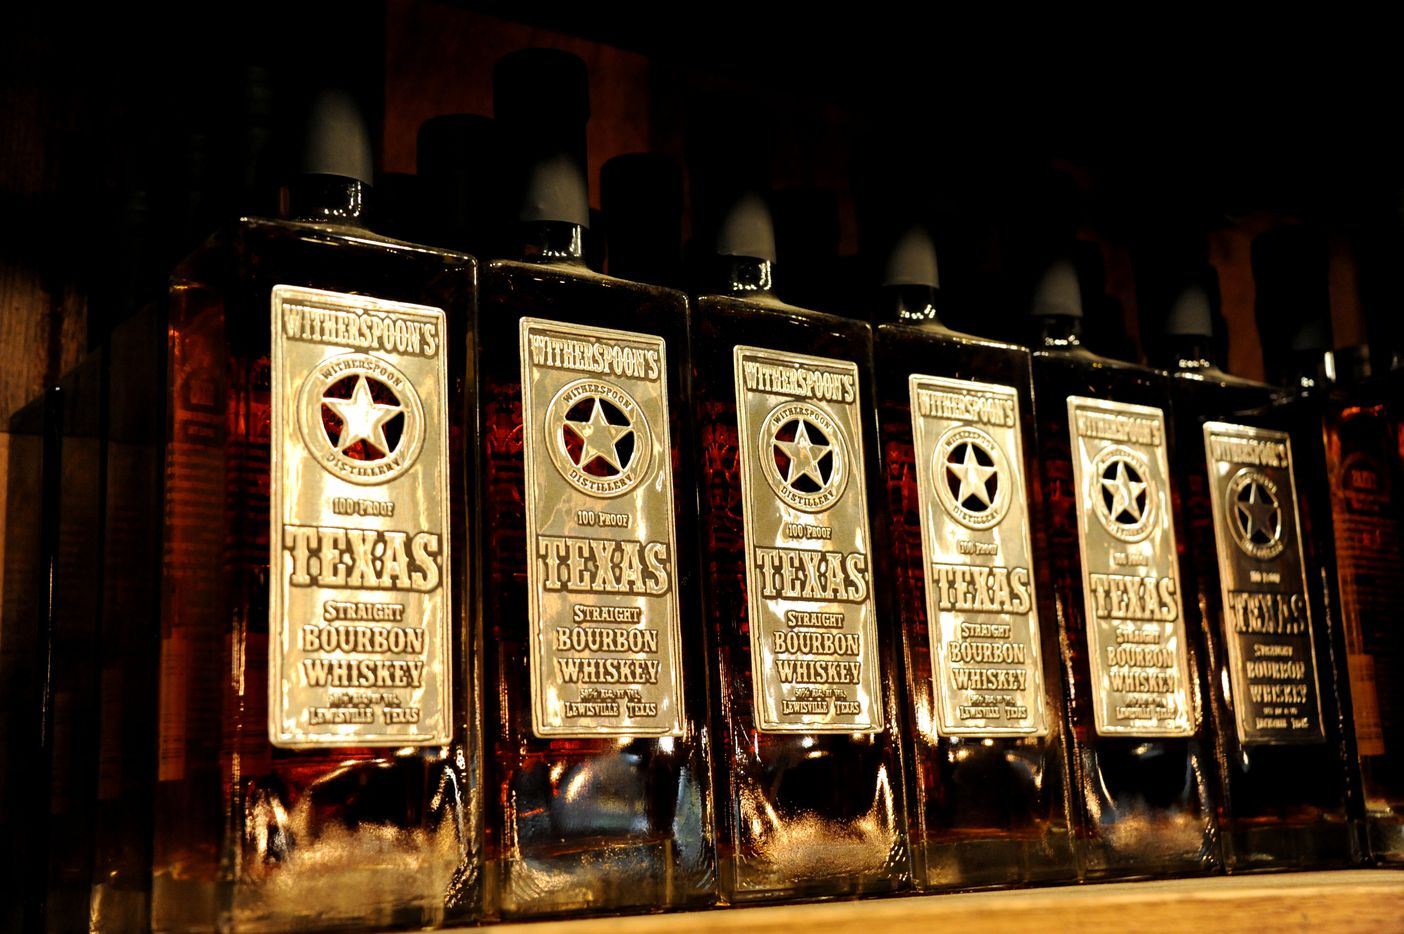 Texas Straight bourbon whiskey features an oaky vanilla and toffee taste at Witherspoon Distillery in Lewisville, TX on October 24, 2015.